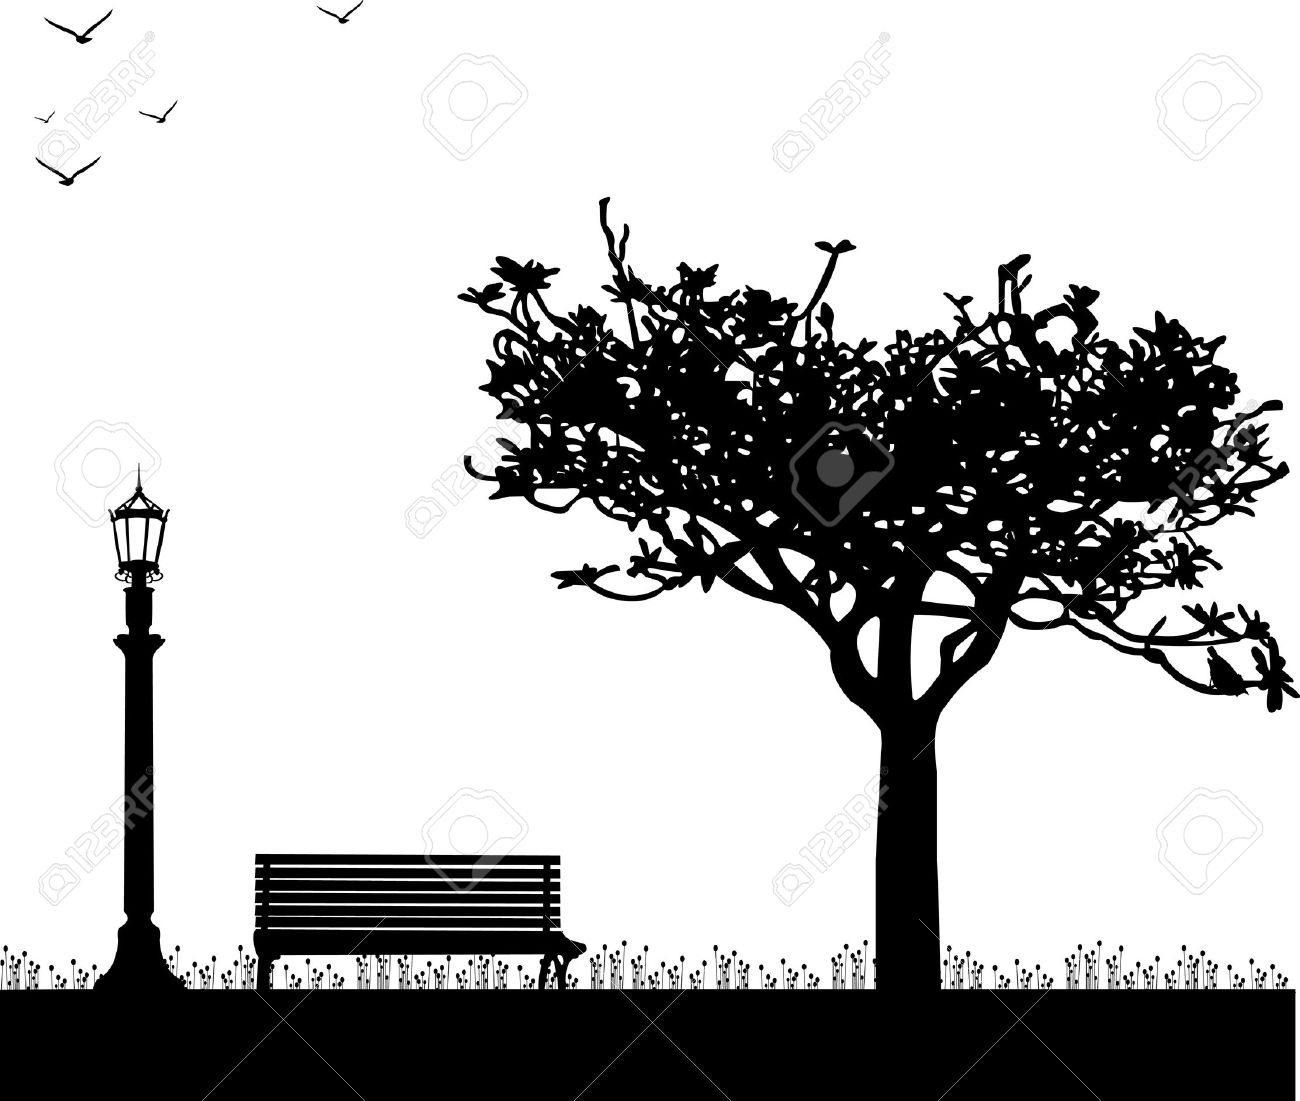 Spring in park with tulips, streetlight, bench, tree and bird one in the series of similar images silhouette Stock Vector - 12431601